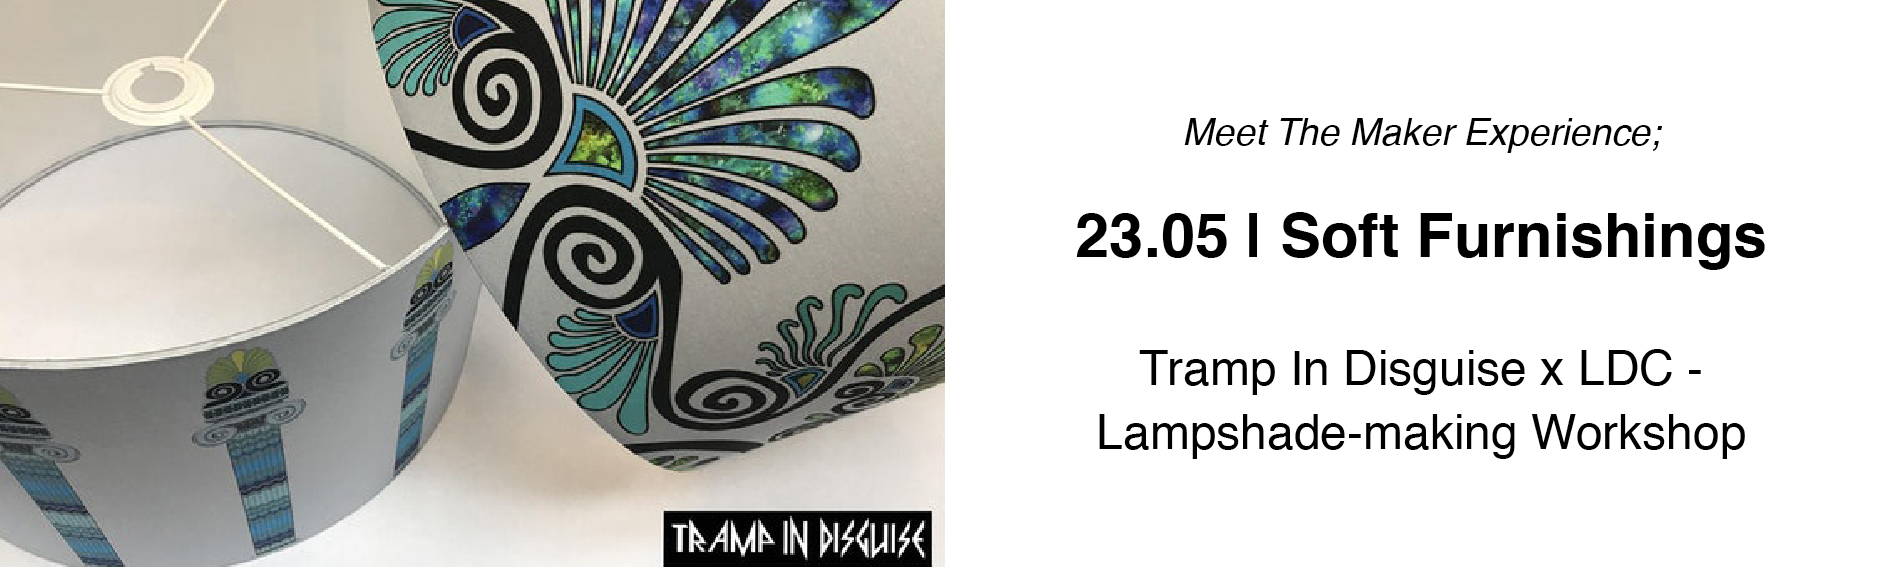 Tramp in Disguise x LDC lampshade making workshop